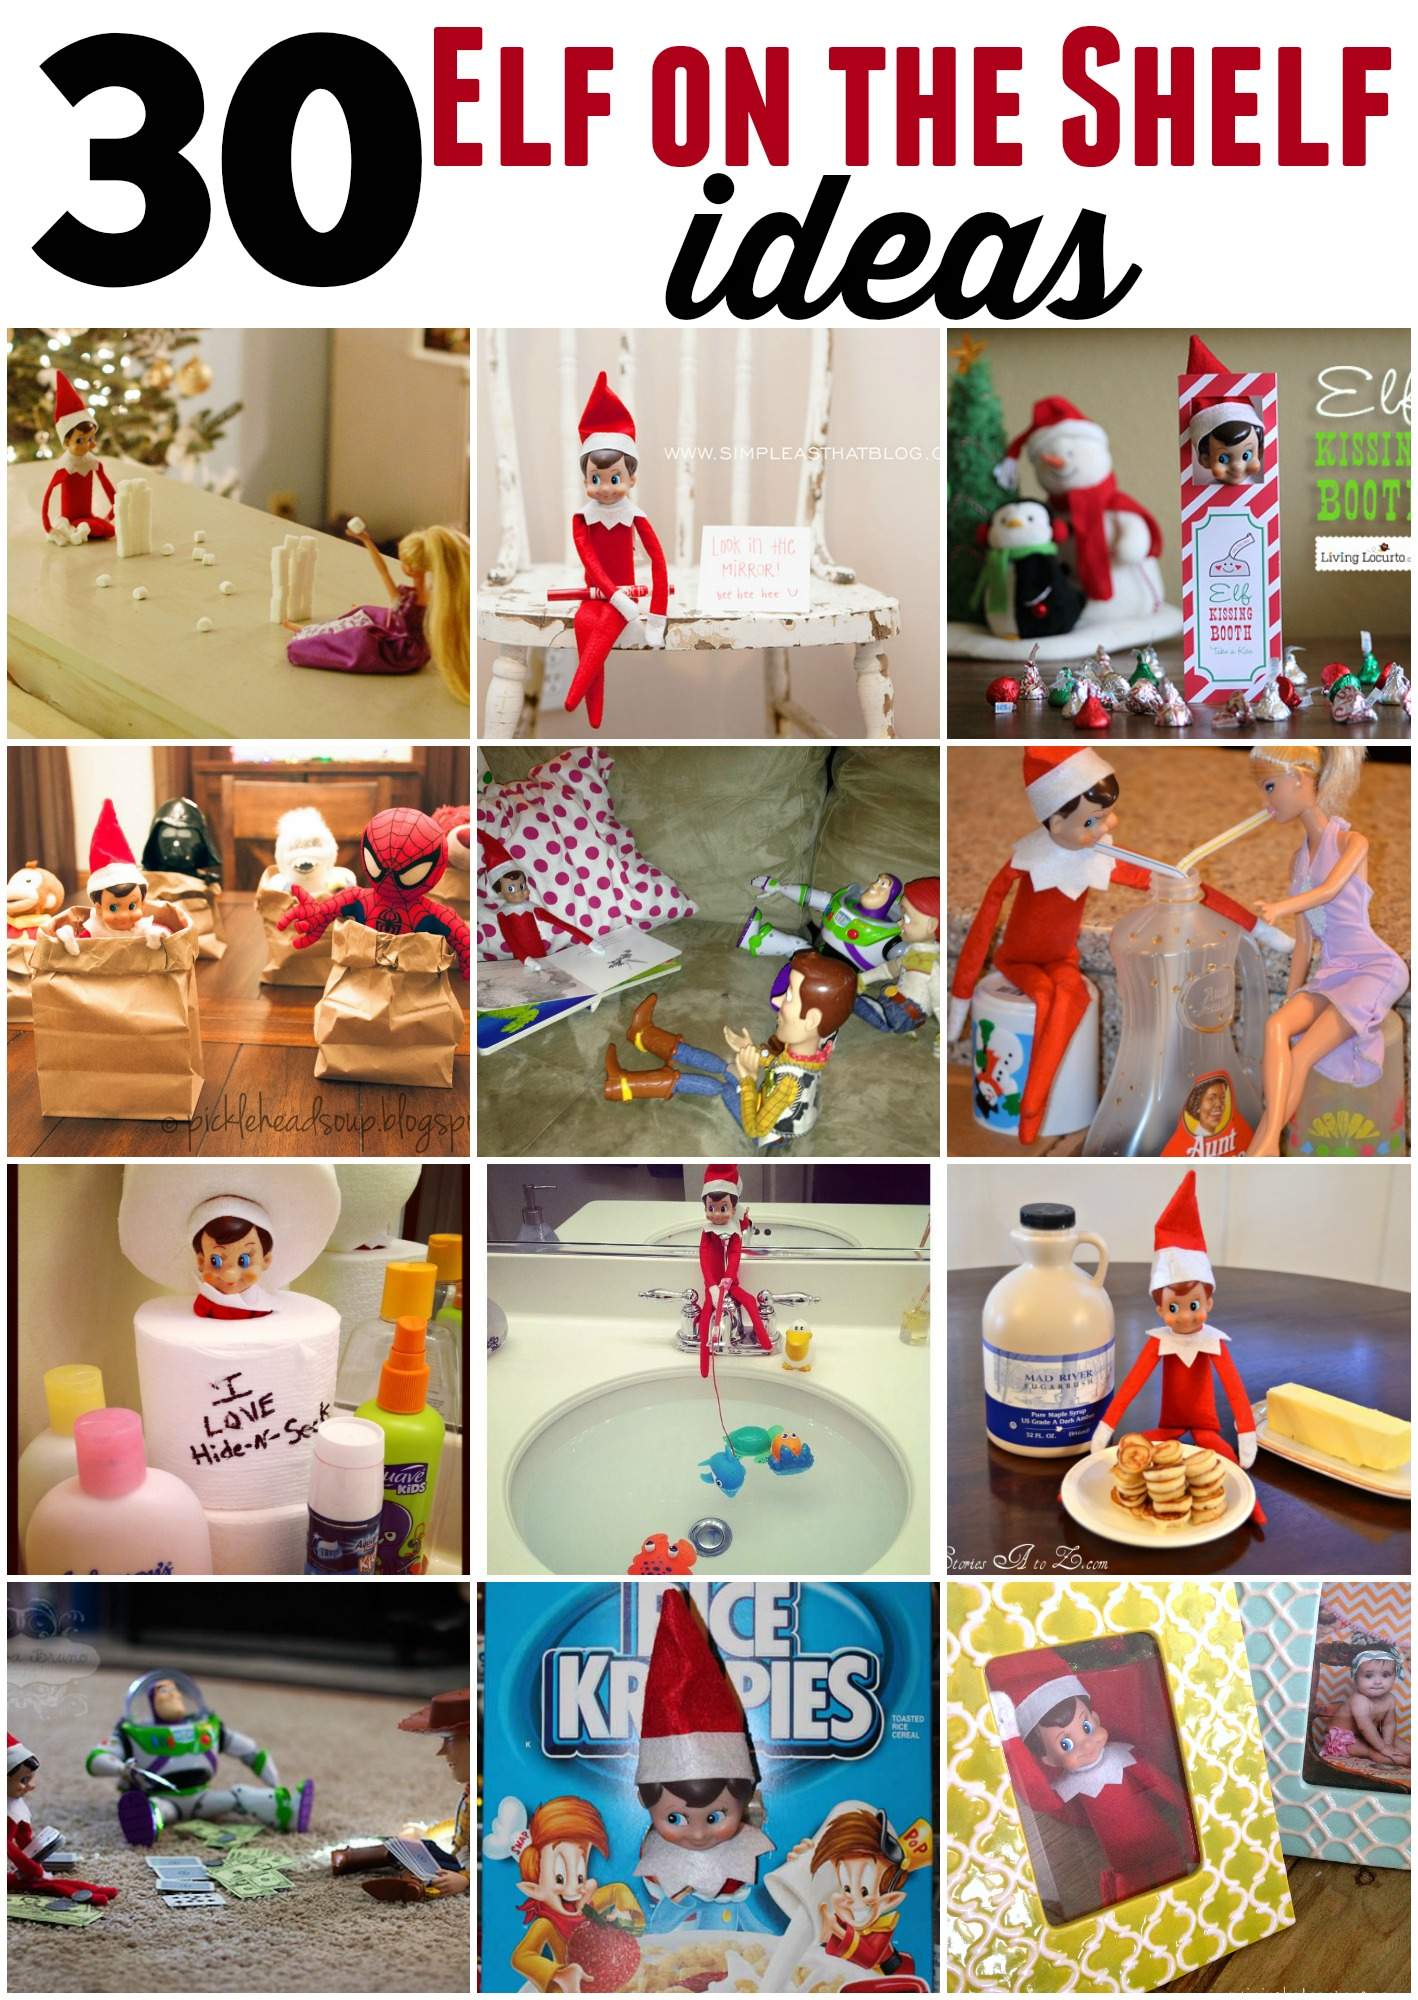 30 elf on the shelf ideas you will want to steal!